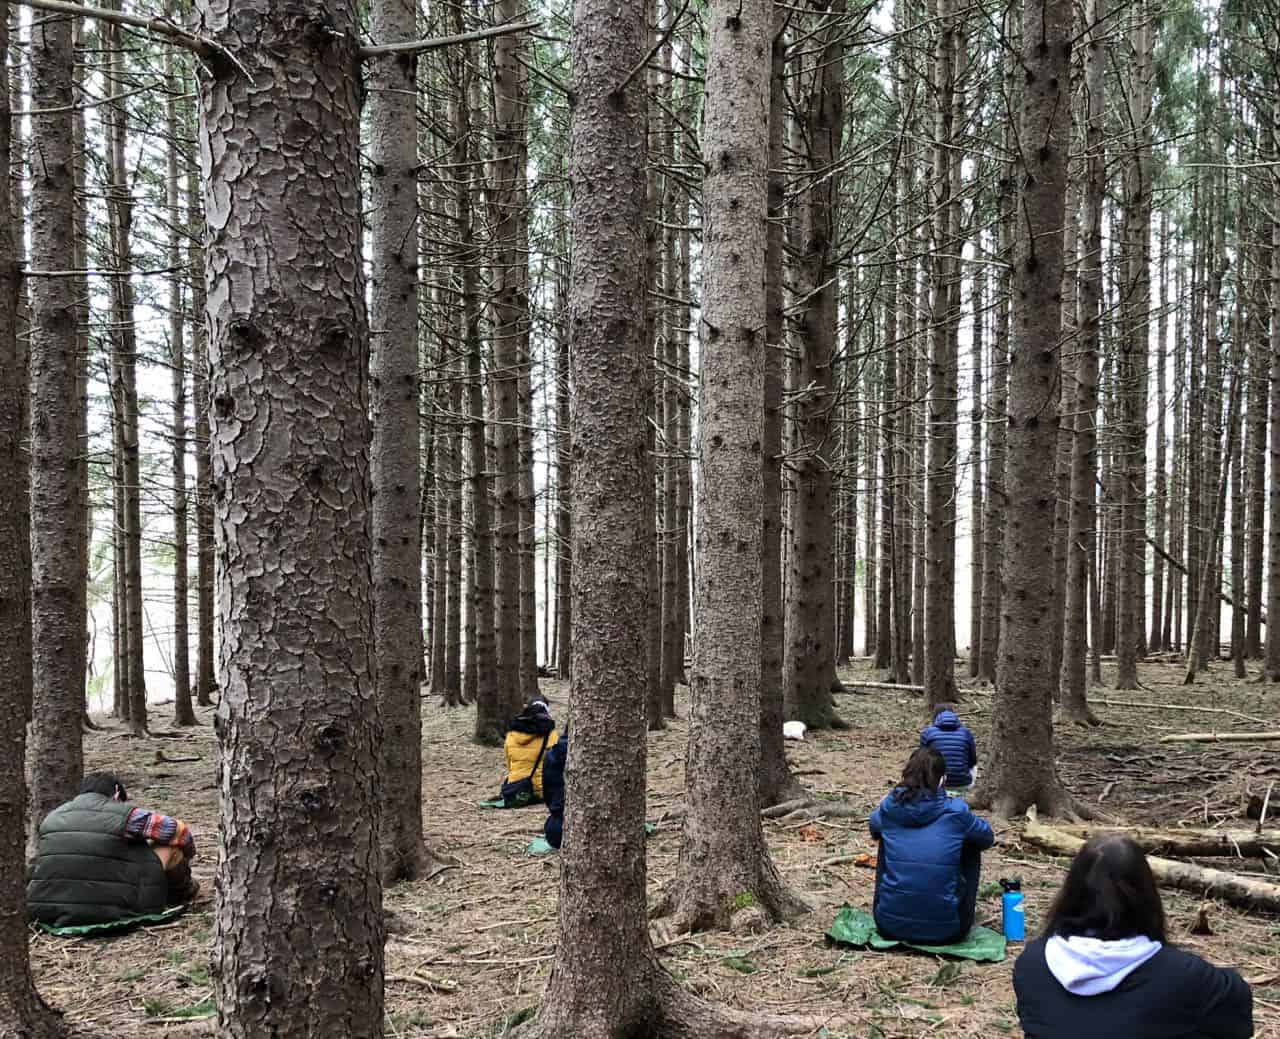 Students sitting in the forest